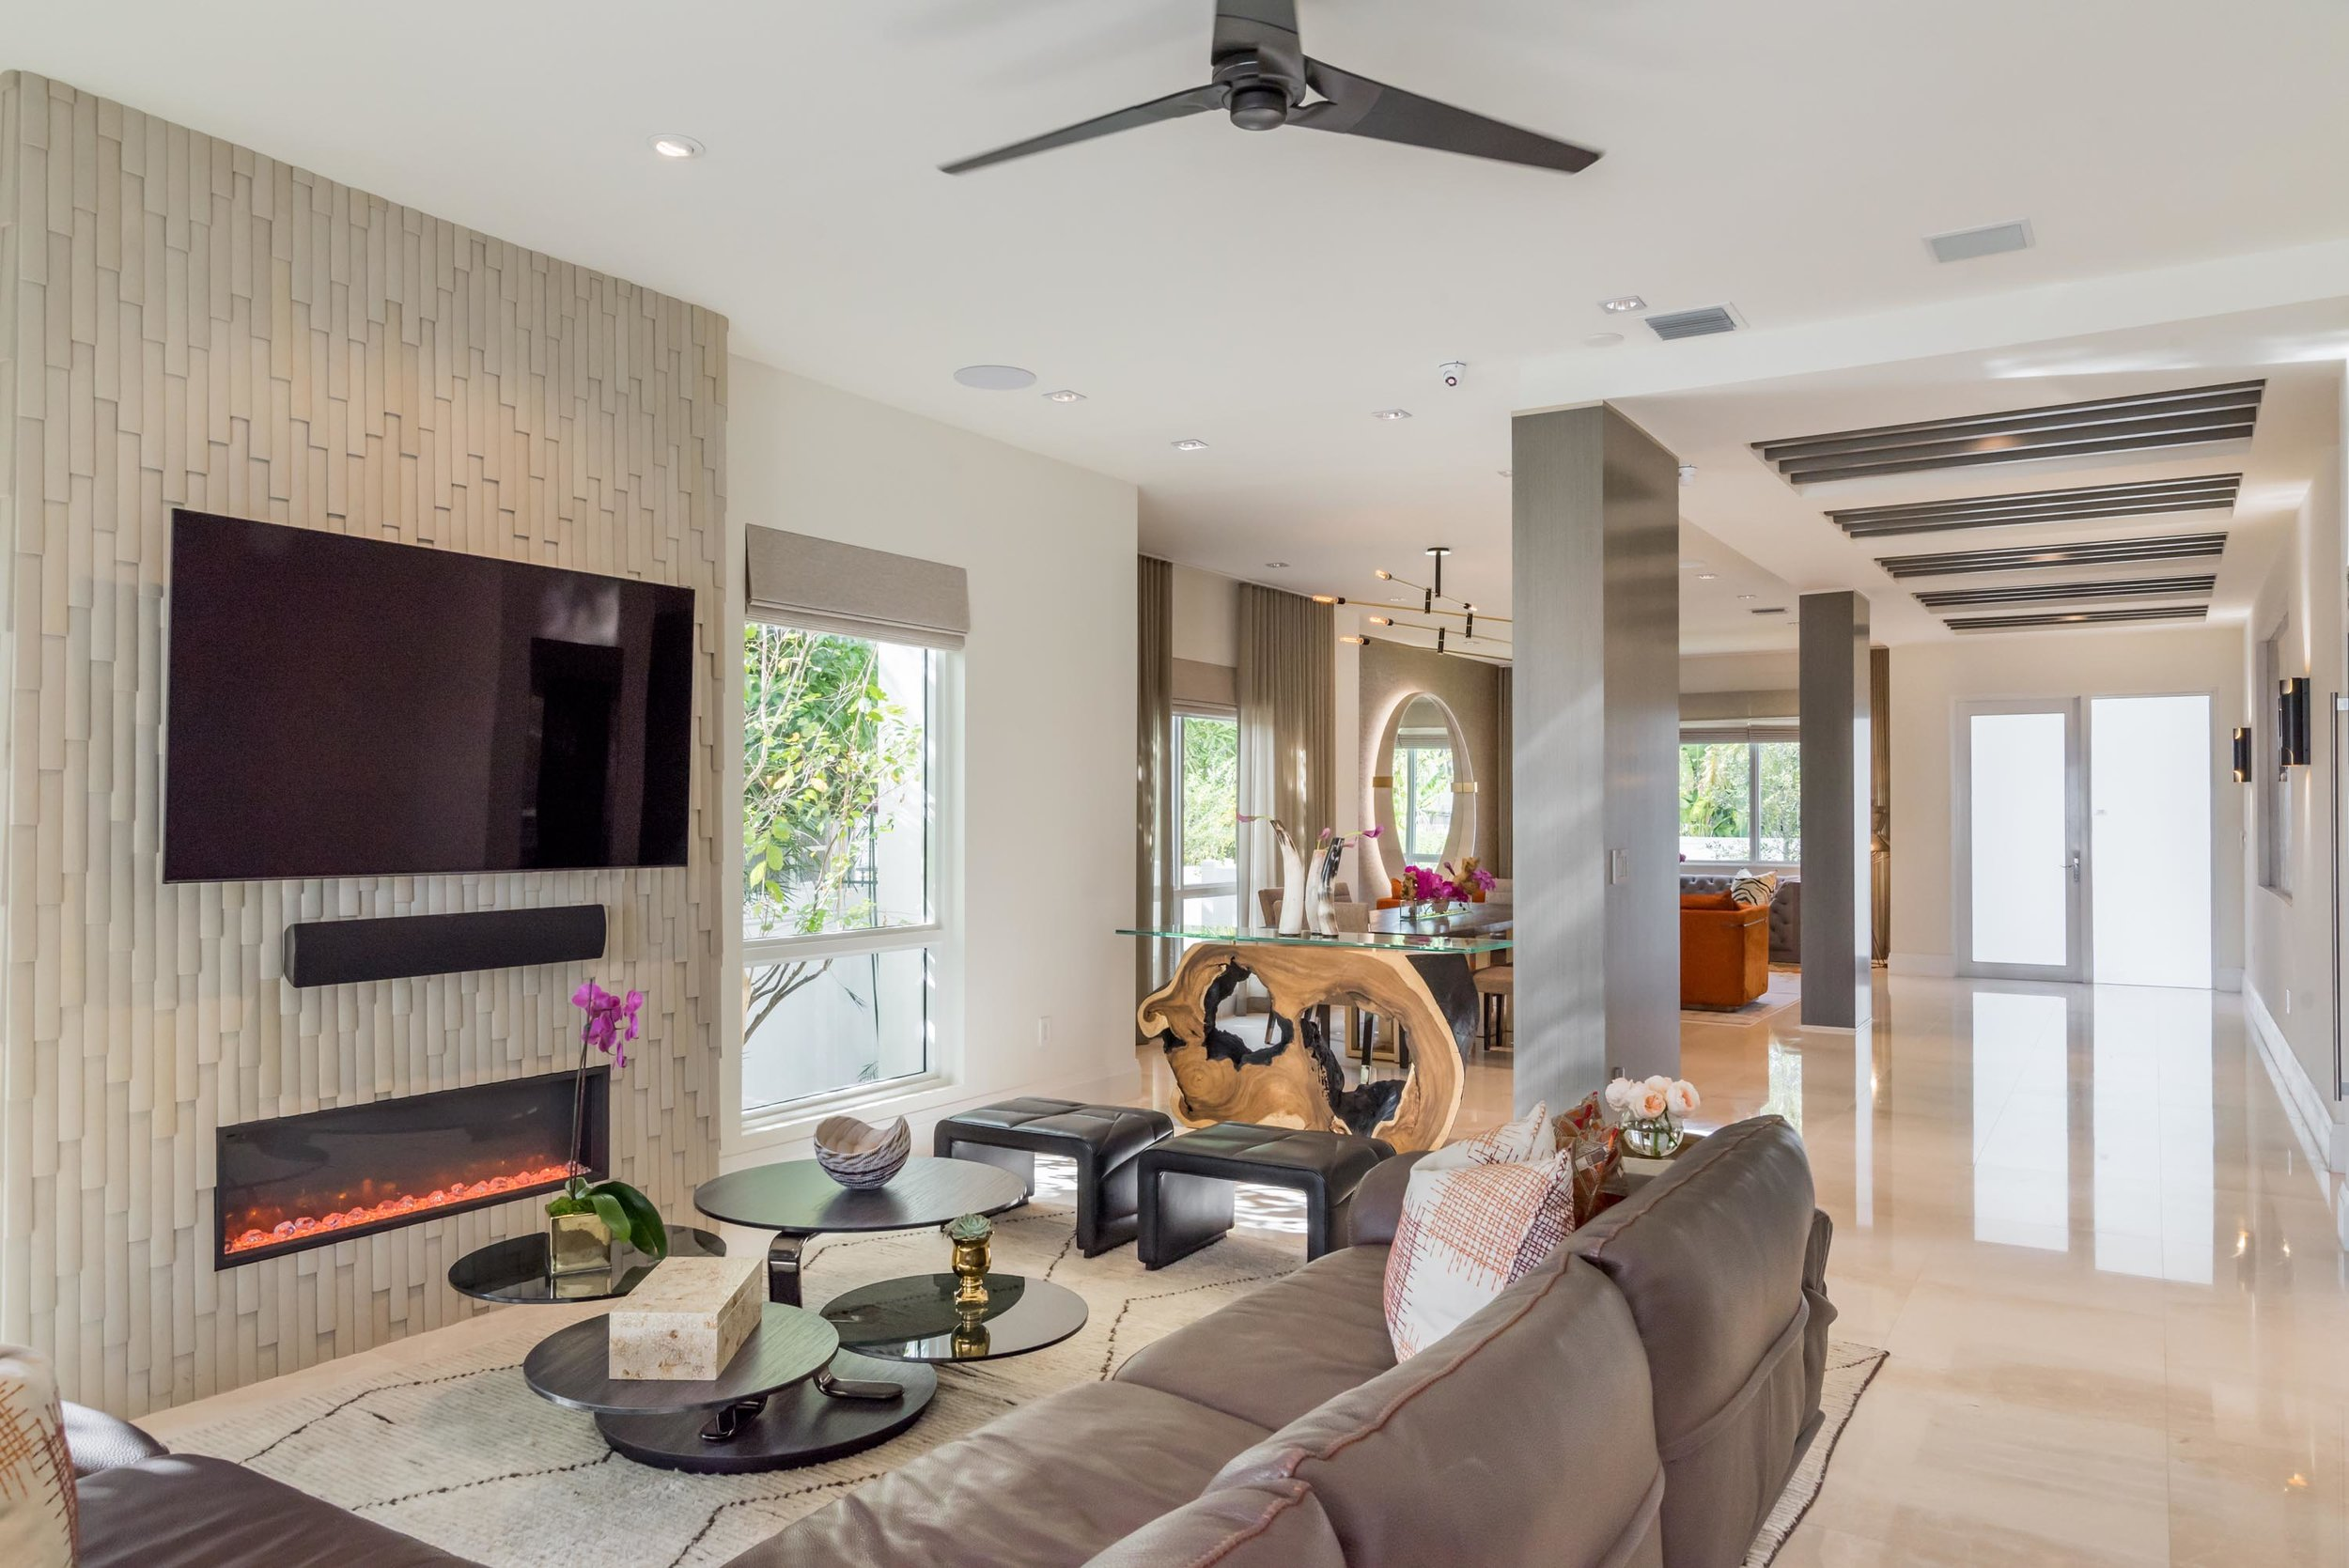 Living room with sofa, chairs, round tables, fireplace, smart tv on wall, ceiling beams and ceiling fan